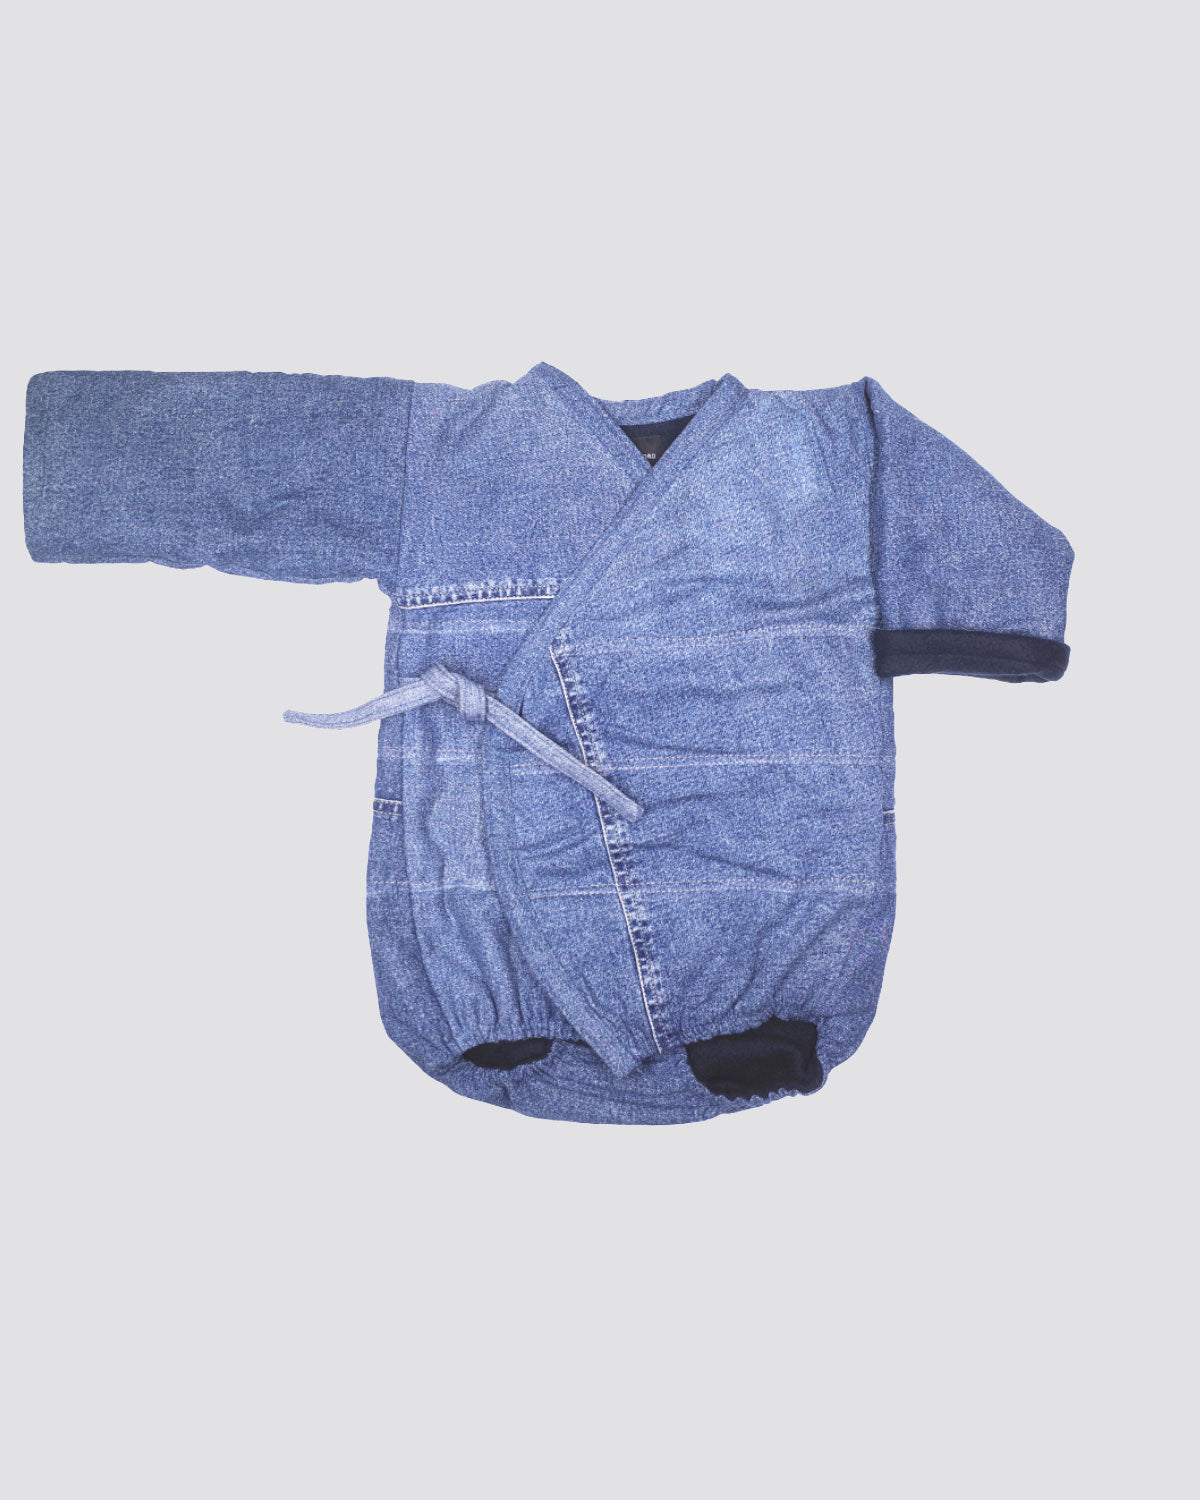 Baby Winter Kimono Onesie - Light Vintage Denim Fleece Interior